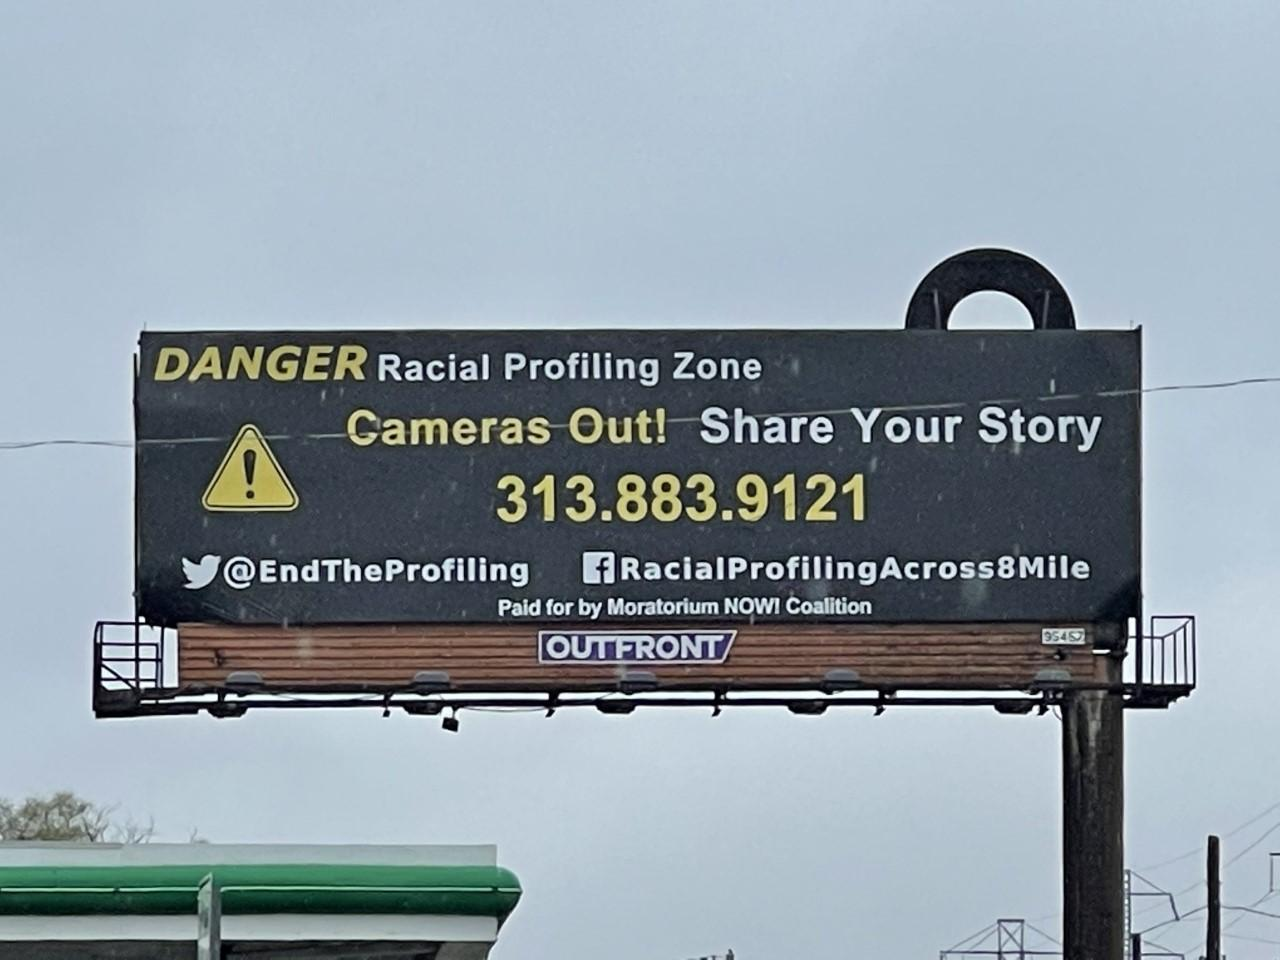 New billboard along 8 Mile Road alleges racial profiling in the area